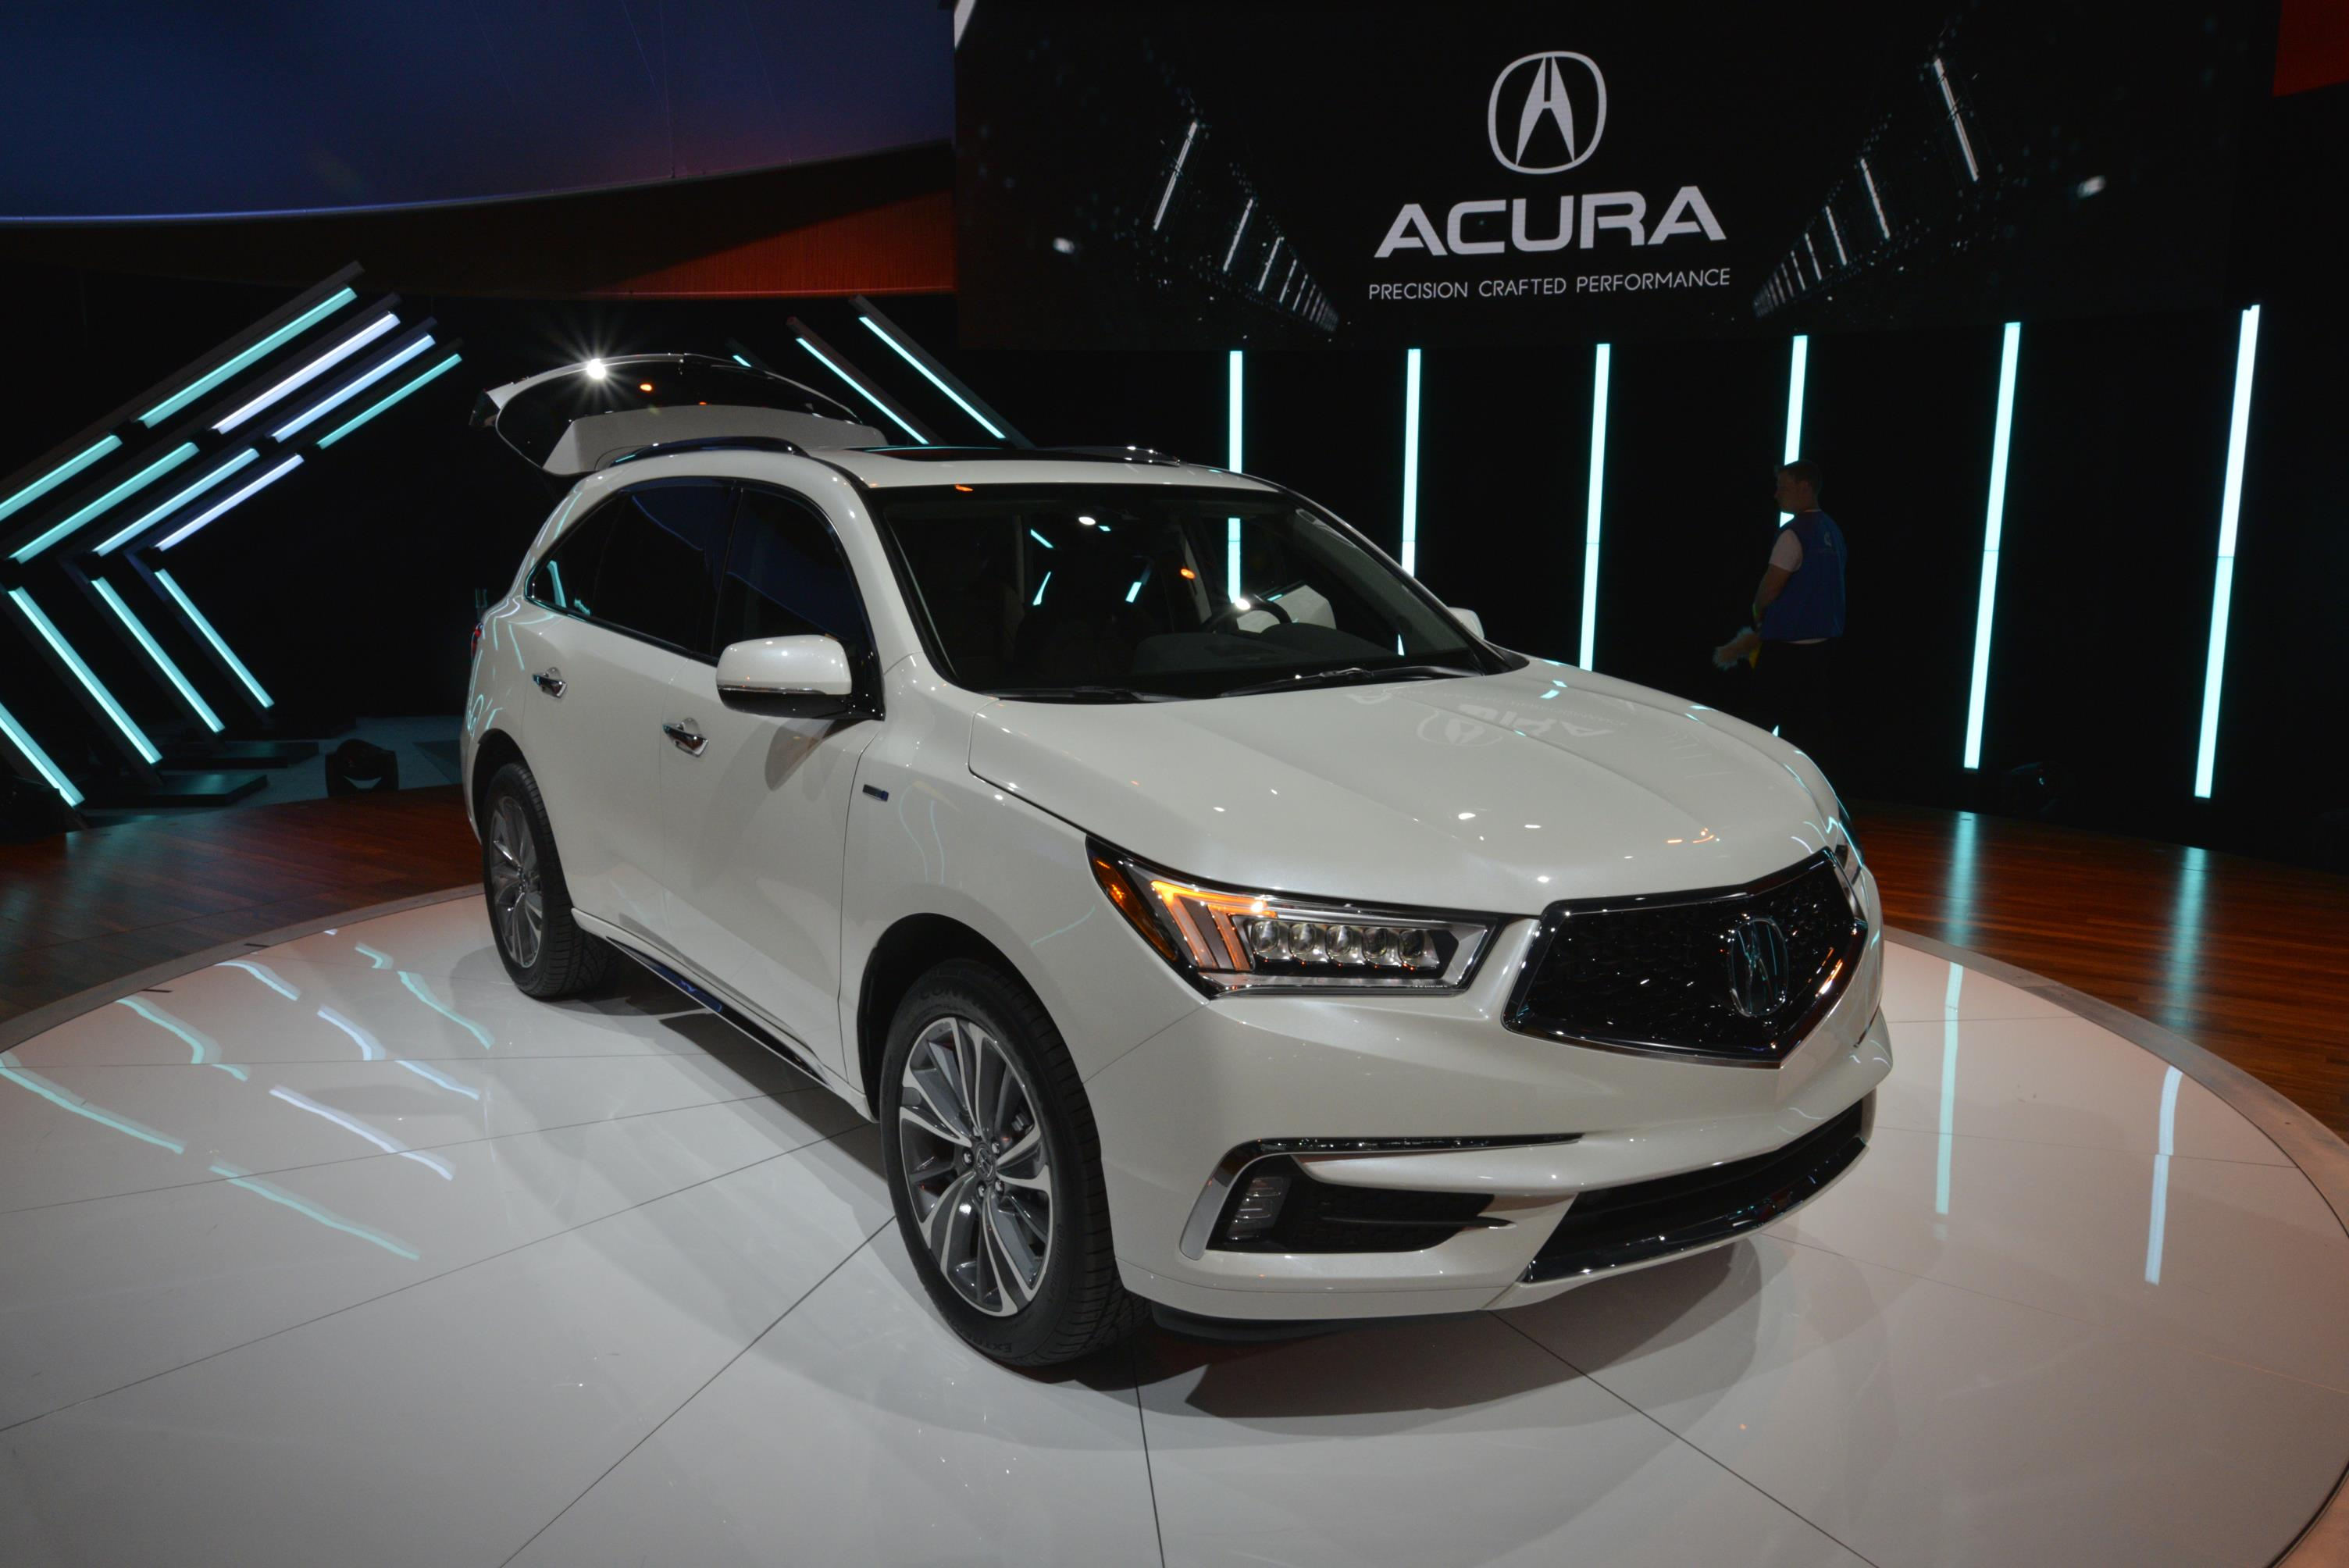 cars cost driven speed top mdxdriven acura mdx